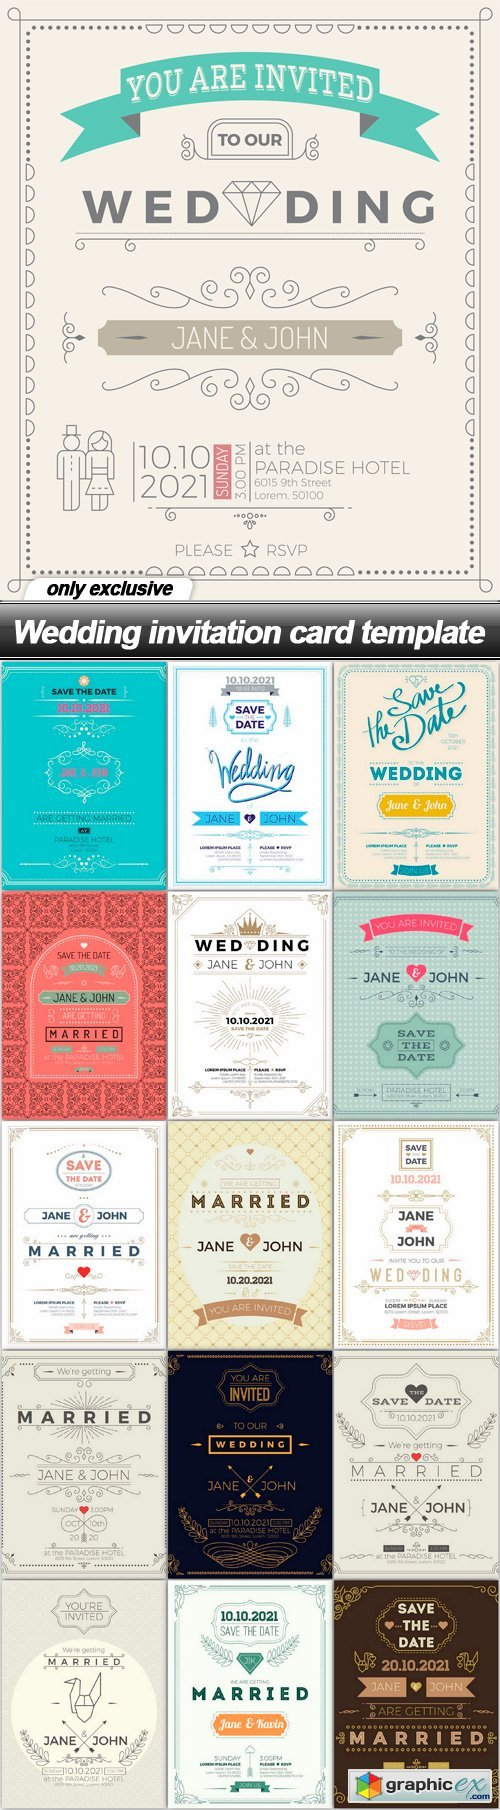 Wedding invitation card template 16 eps free download vector wedding invitation card template 16 eps stopboris Image collections